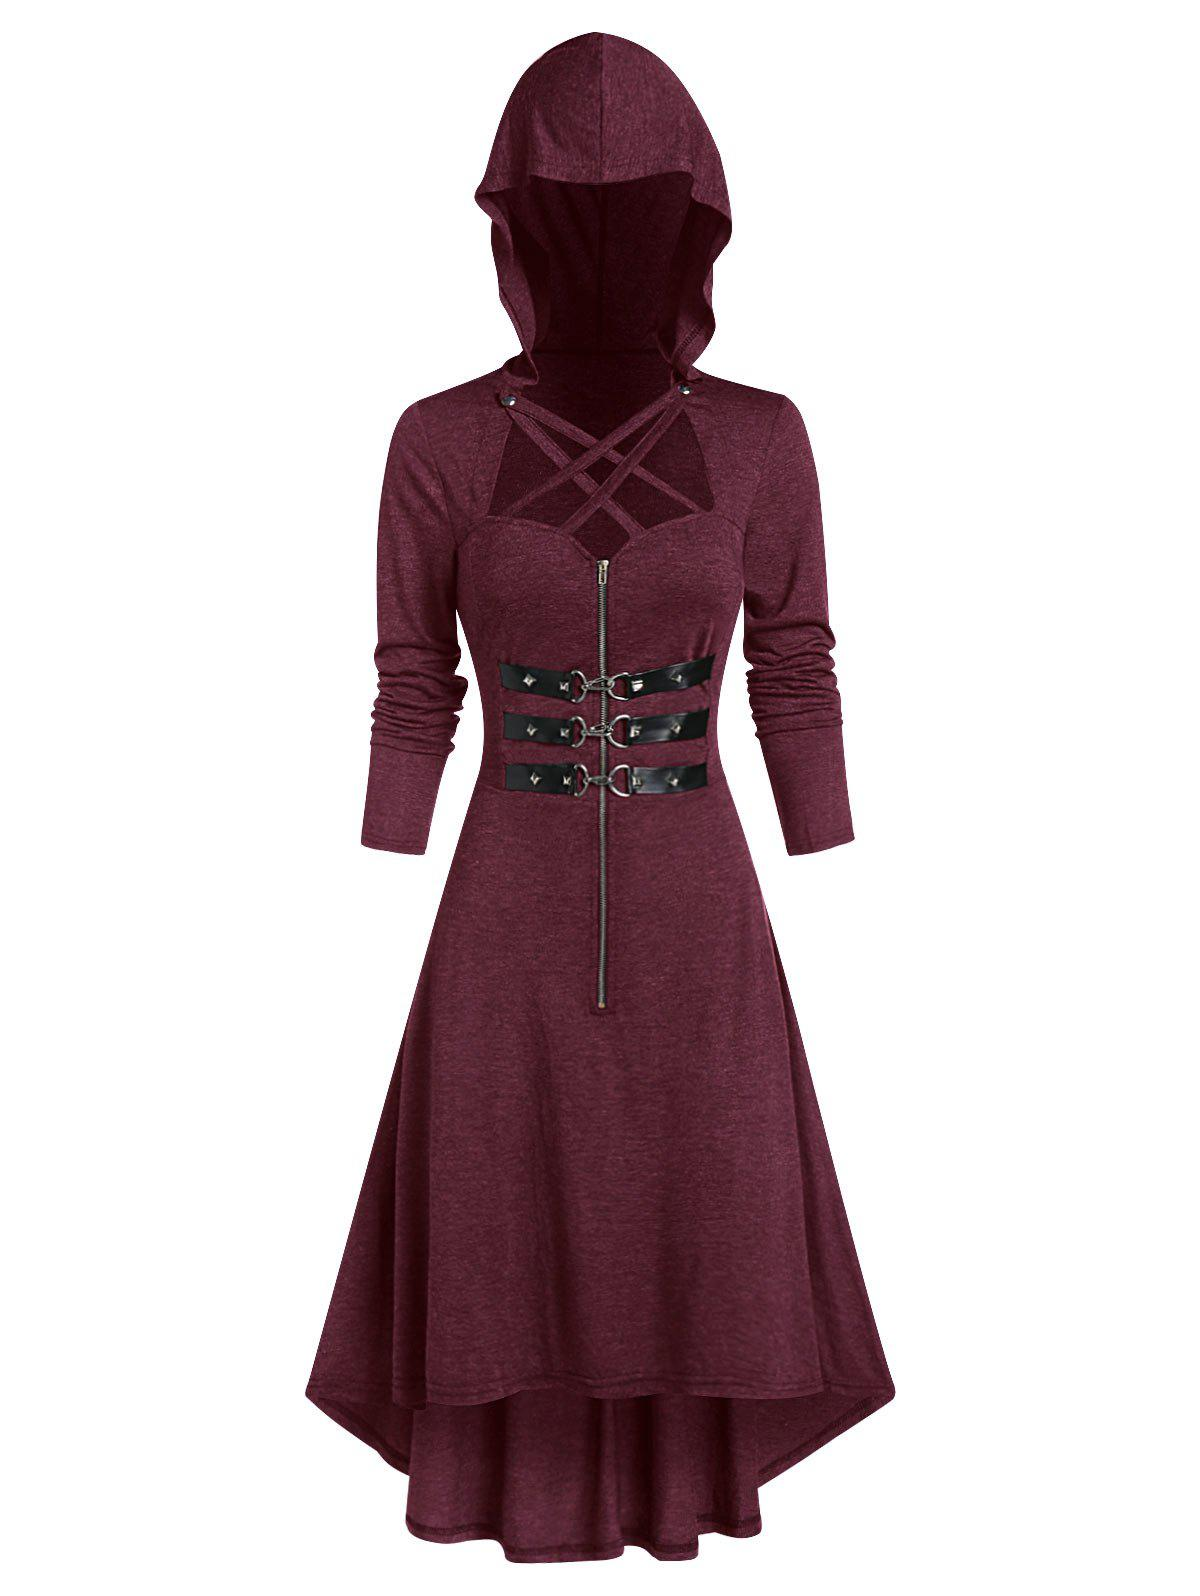 Hooded Lobster Buckle Strap High Low Gothic Dress - FIREBRICK S